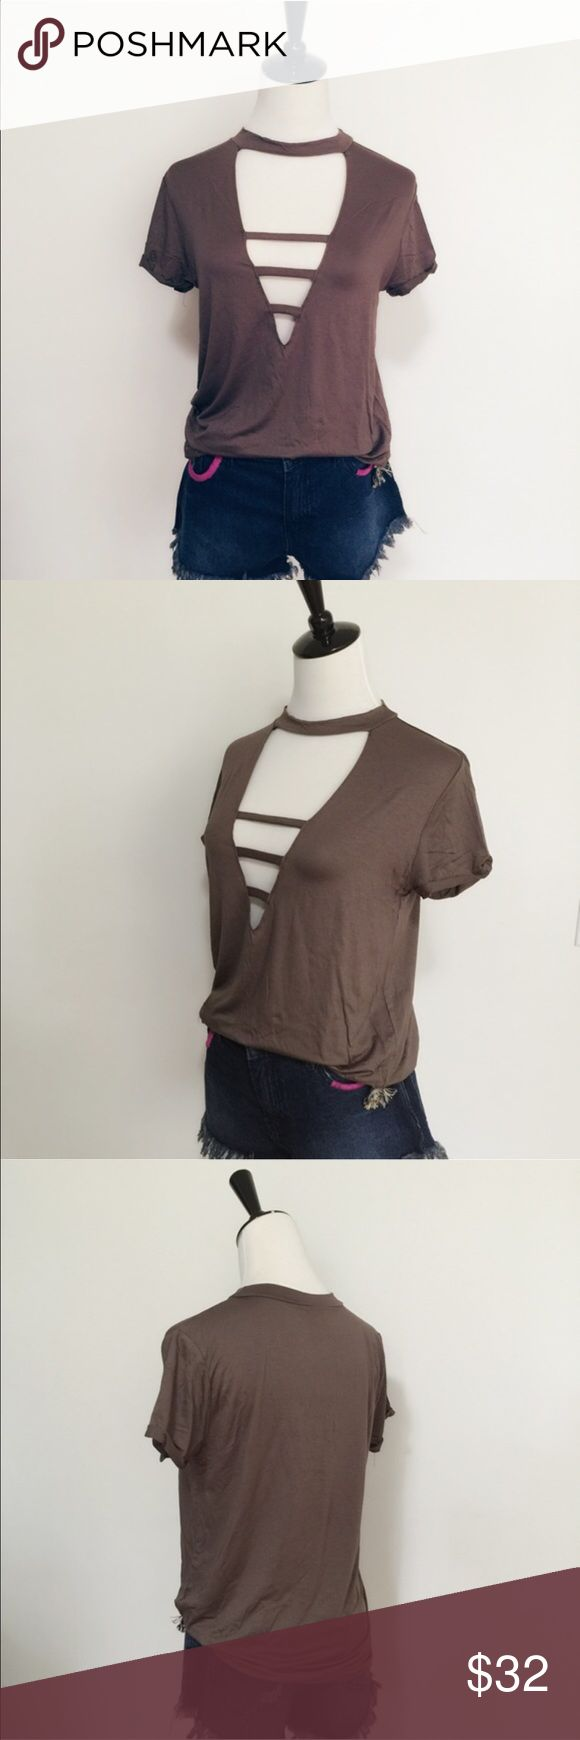 ⭐️JUST IN⭐️Boho open front top Lightweight top with a front open cut out top. Mocha colored, Made in the U.S.A. trades, bundle and save April Spirit Tops Tees - Short Sleeve